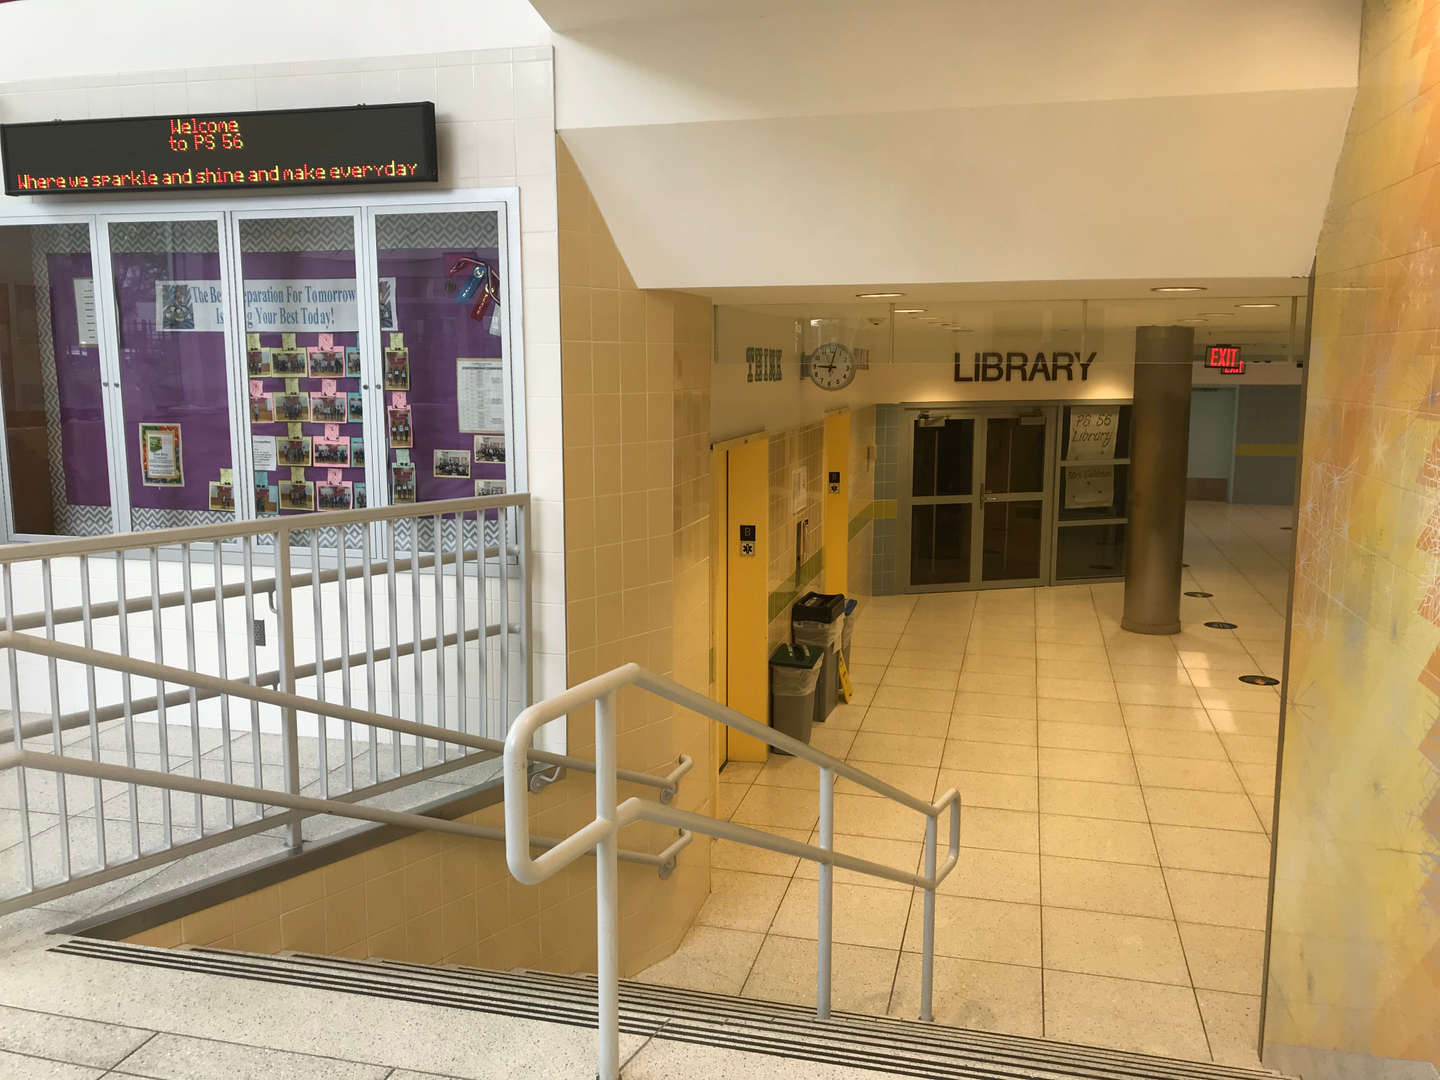 PS 56 library entrance floor.